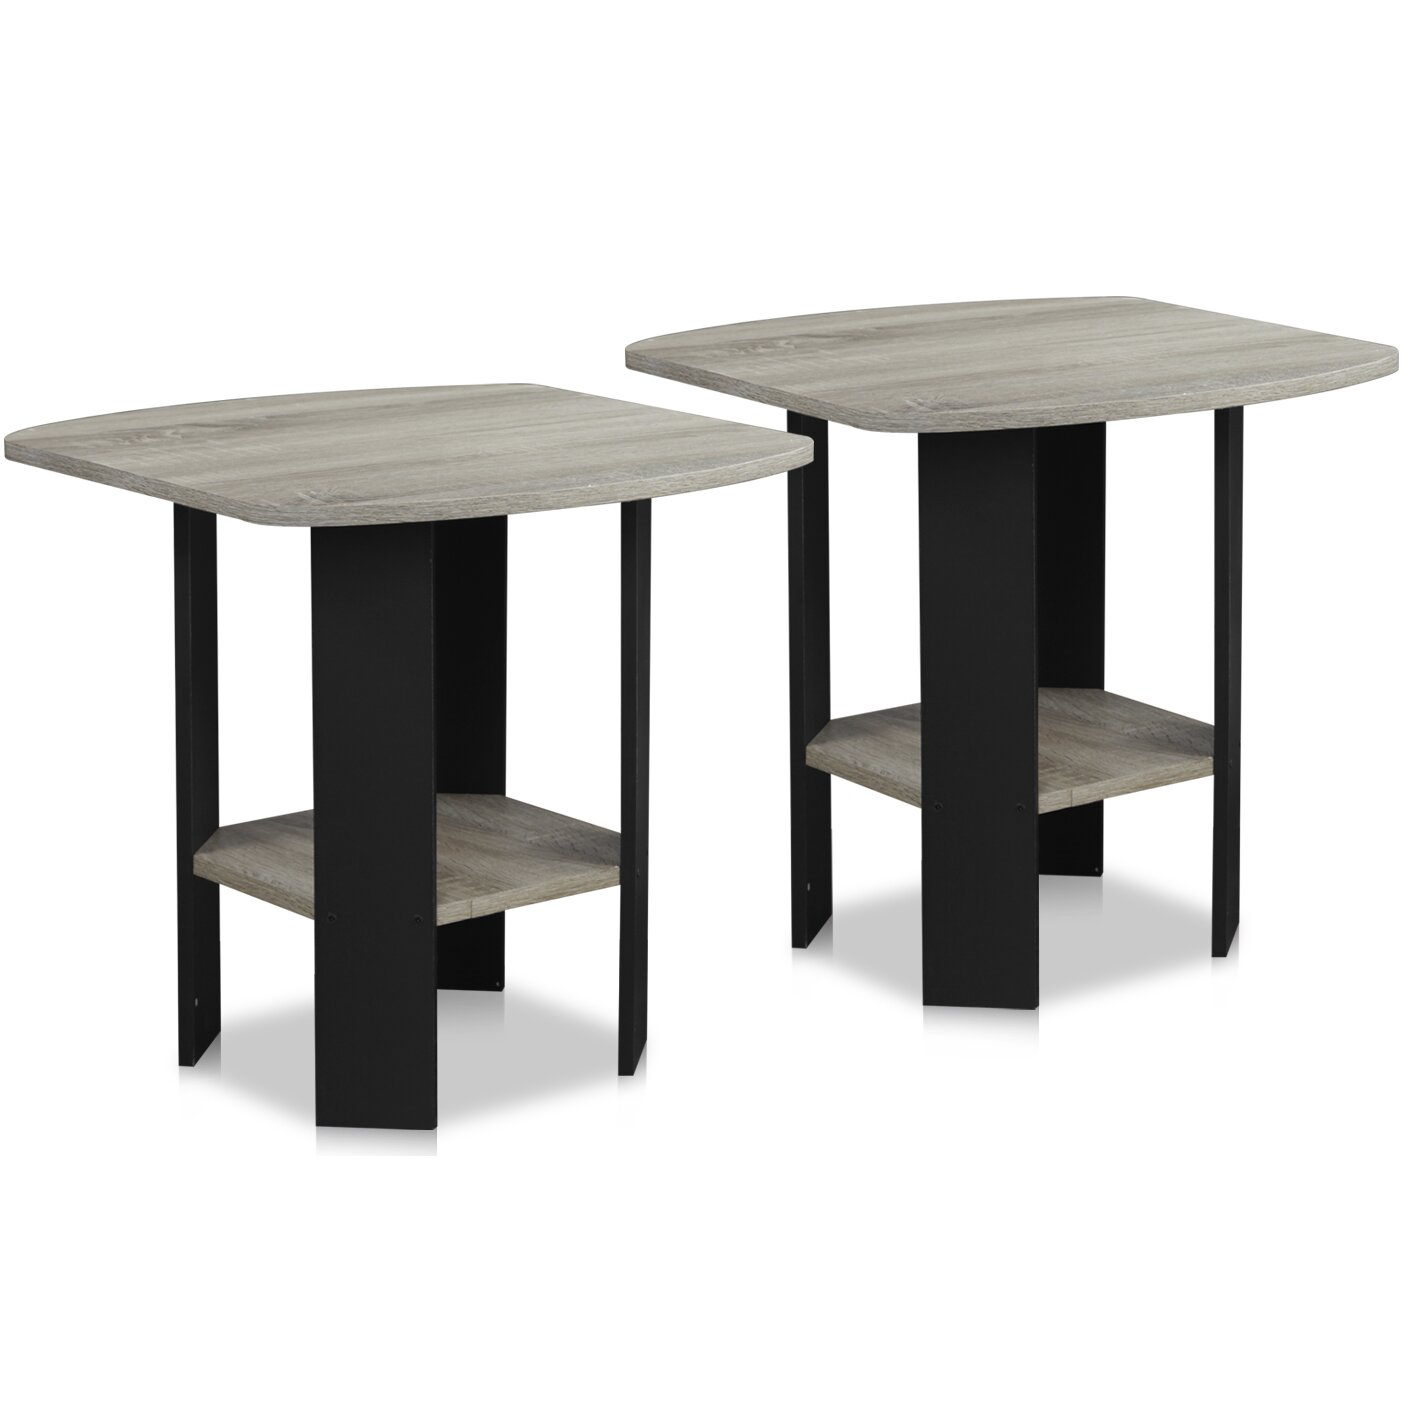 Furinno simple end table reviews wayfair for Simple html table